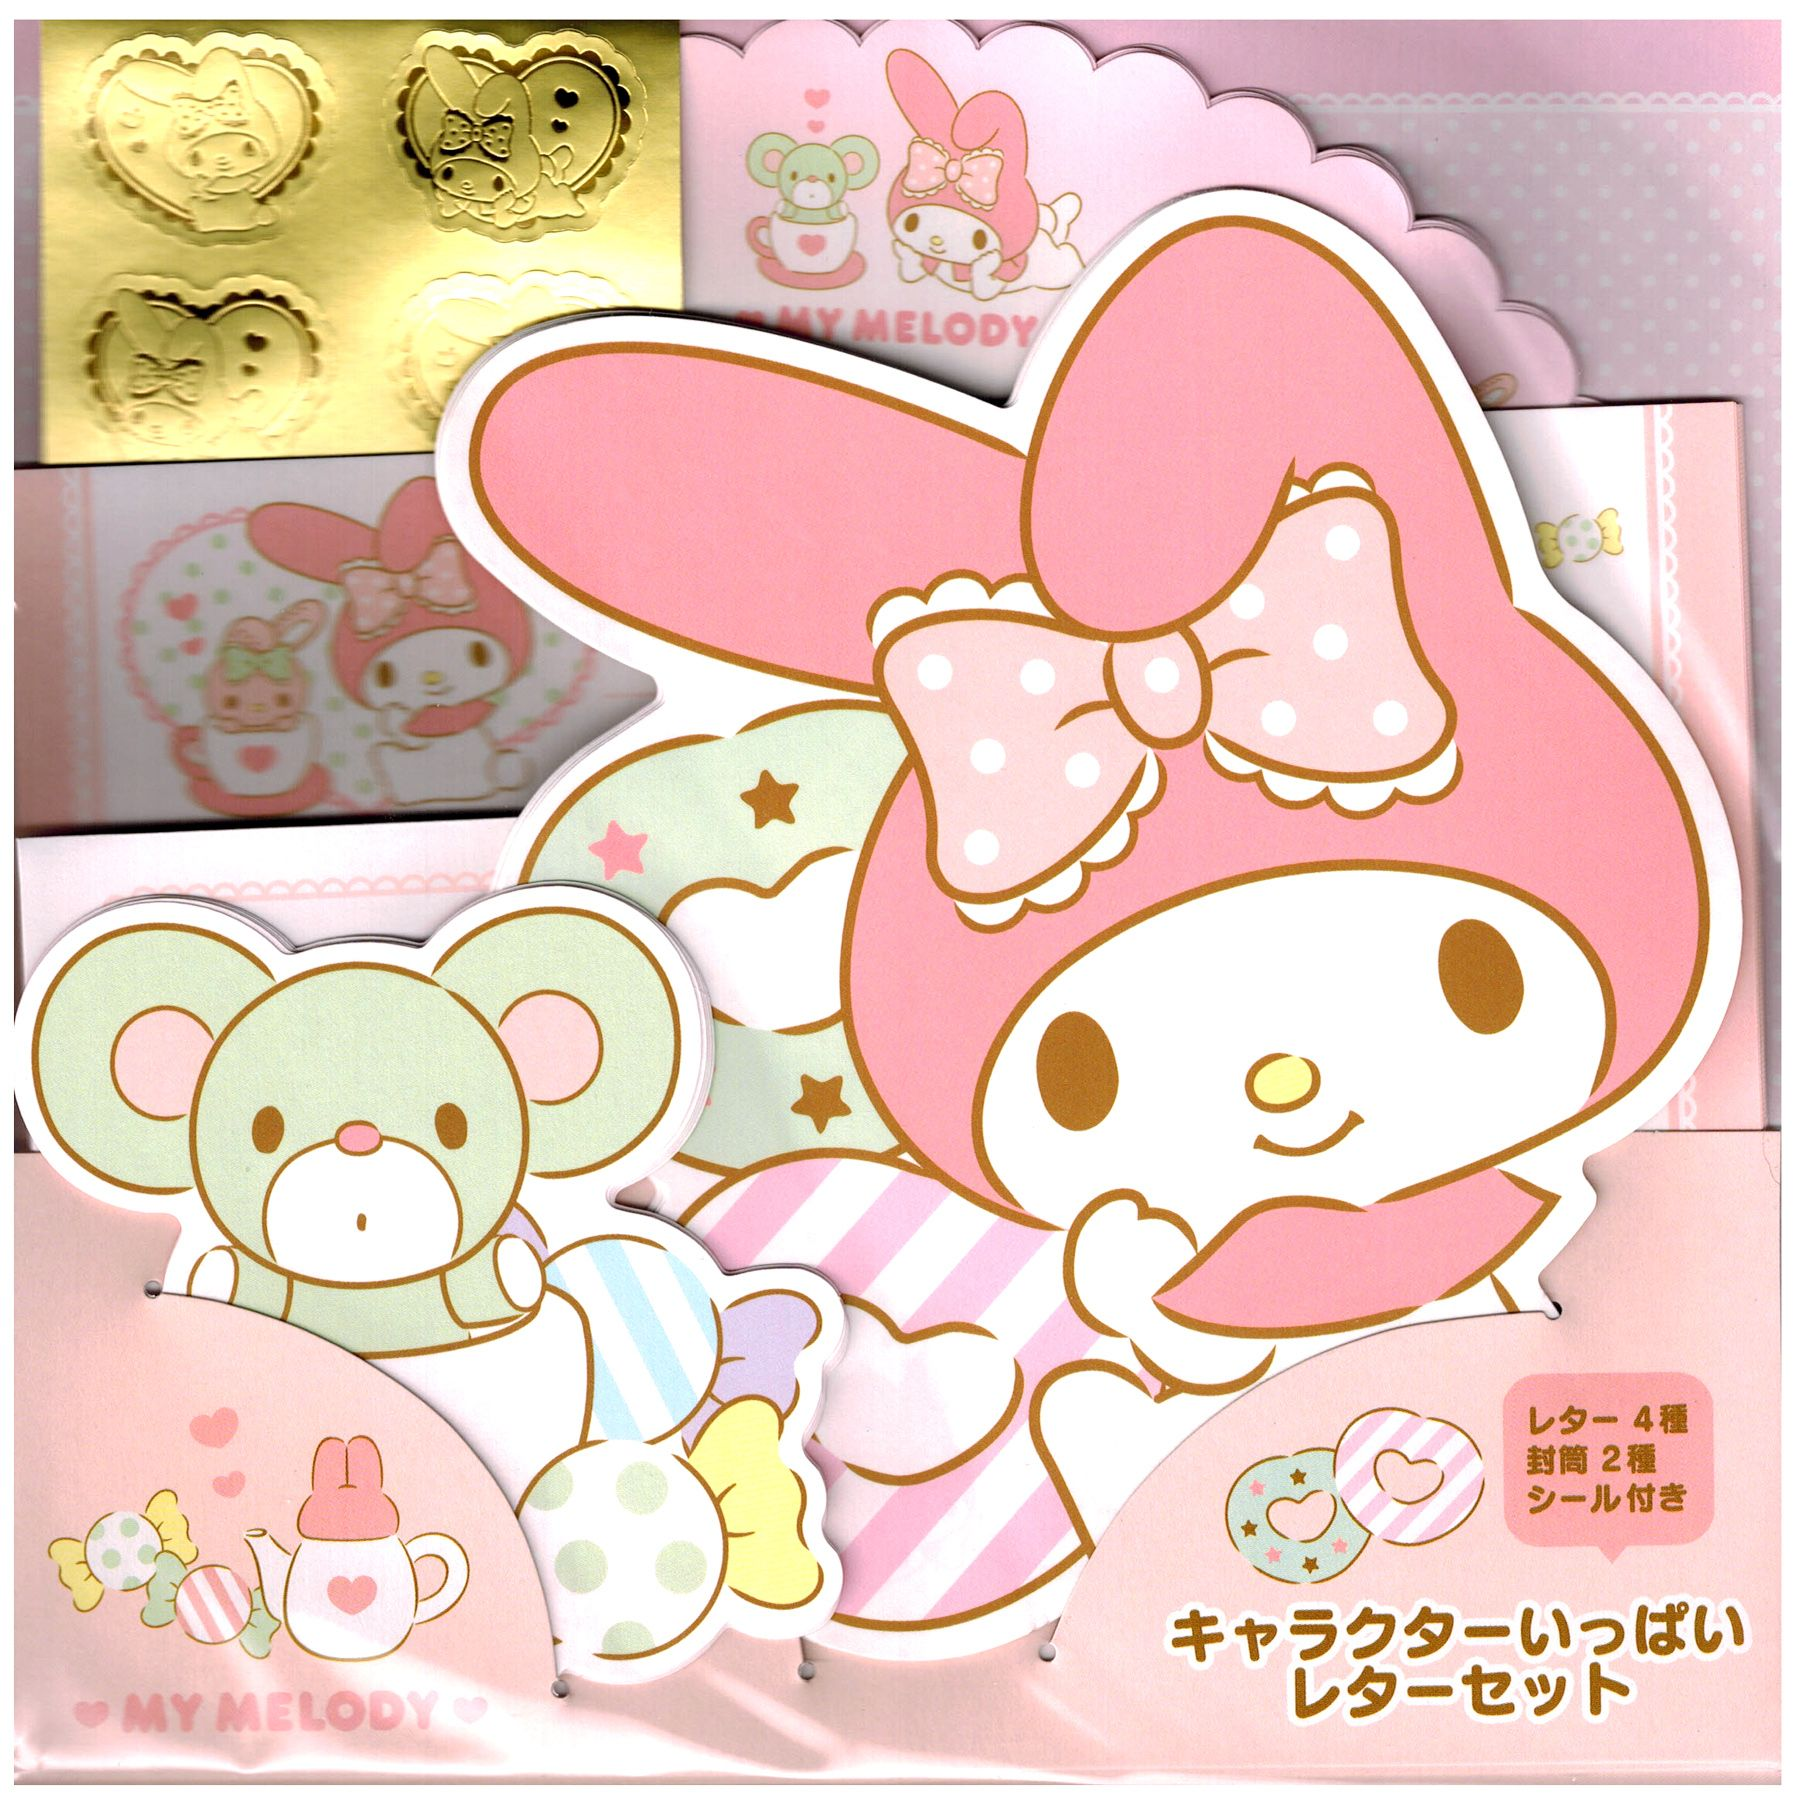 Sanrio My Melody Candy 4Design Letter Set (With images